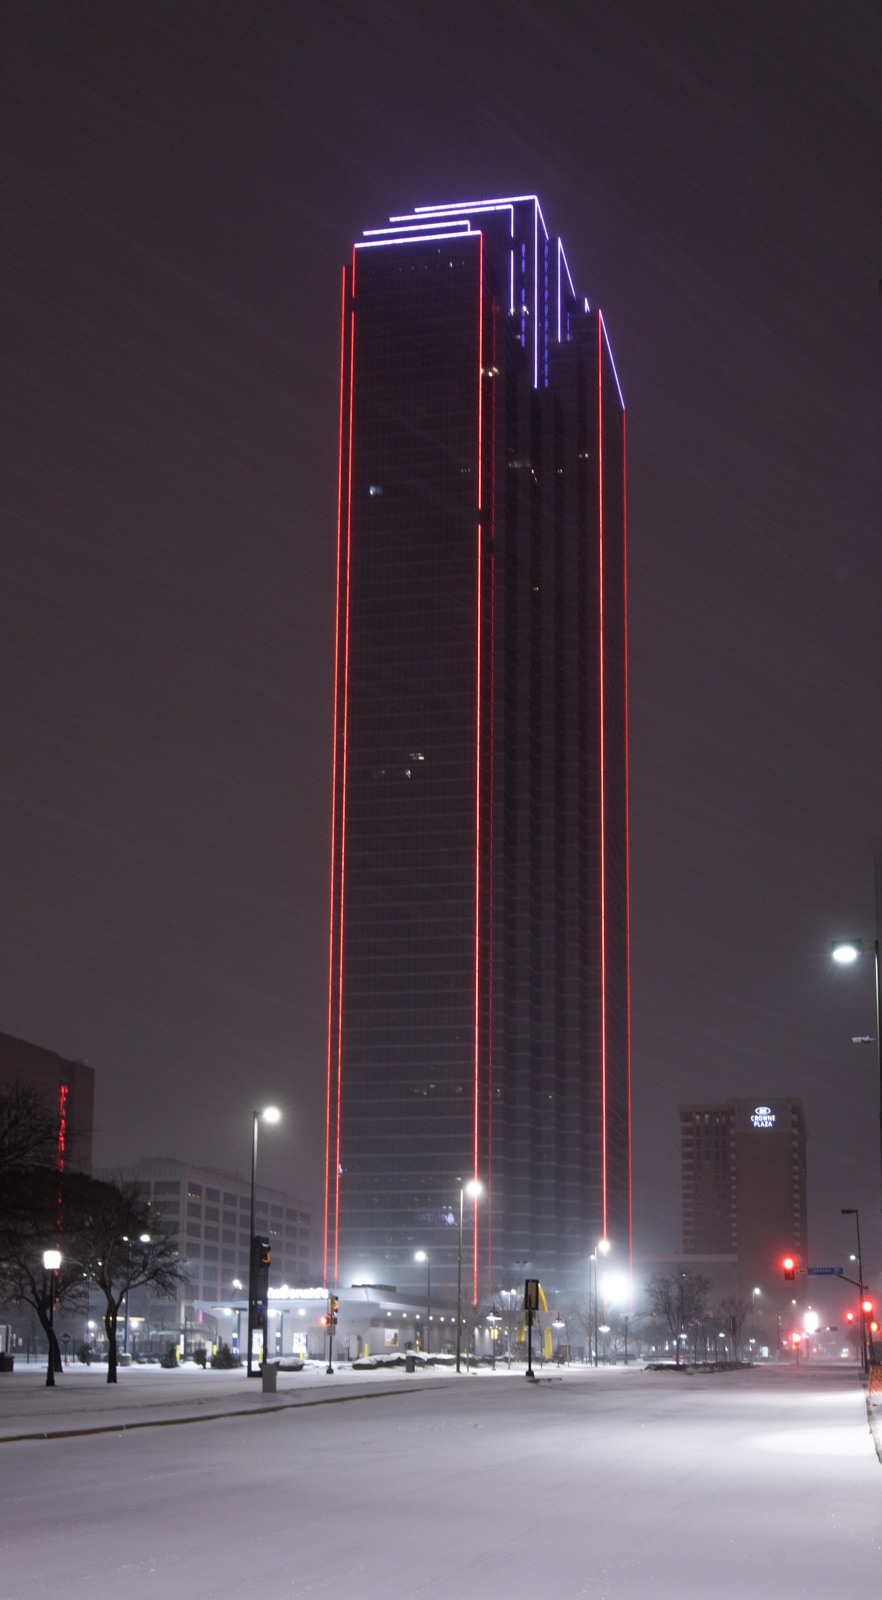 Bank of America Plaza with red lights at night on a snowy evening